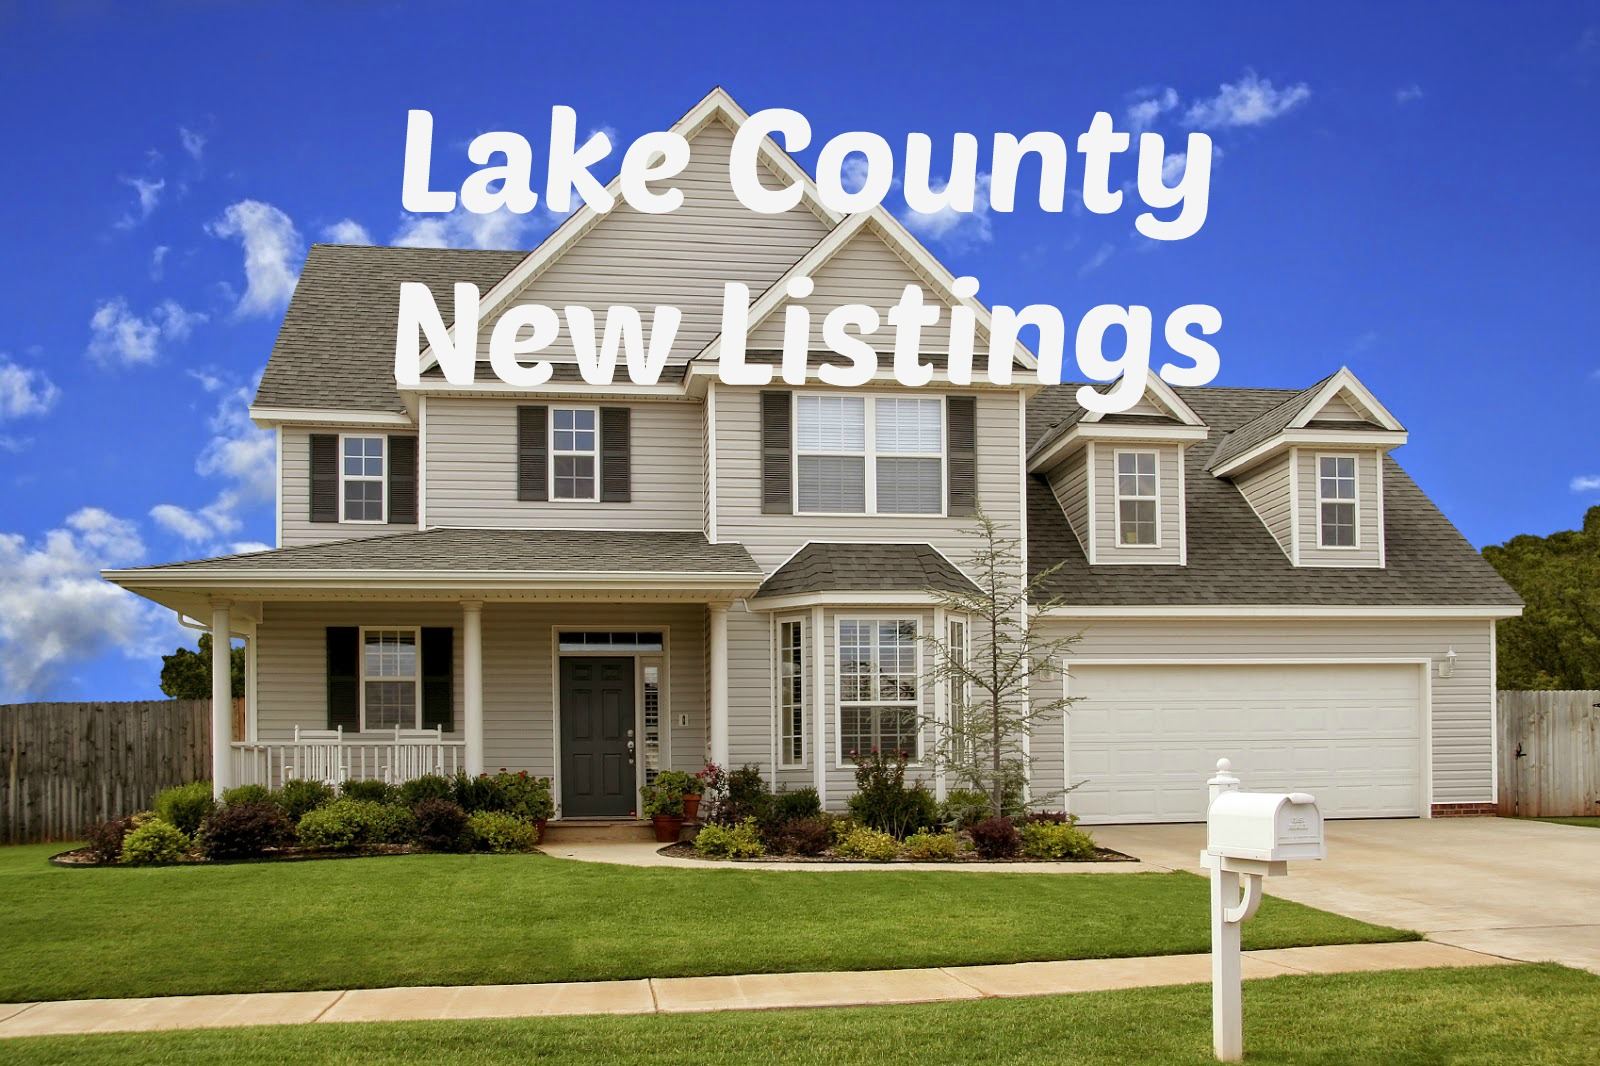 Lake County Homes - New Listing